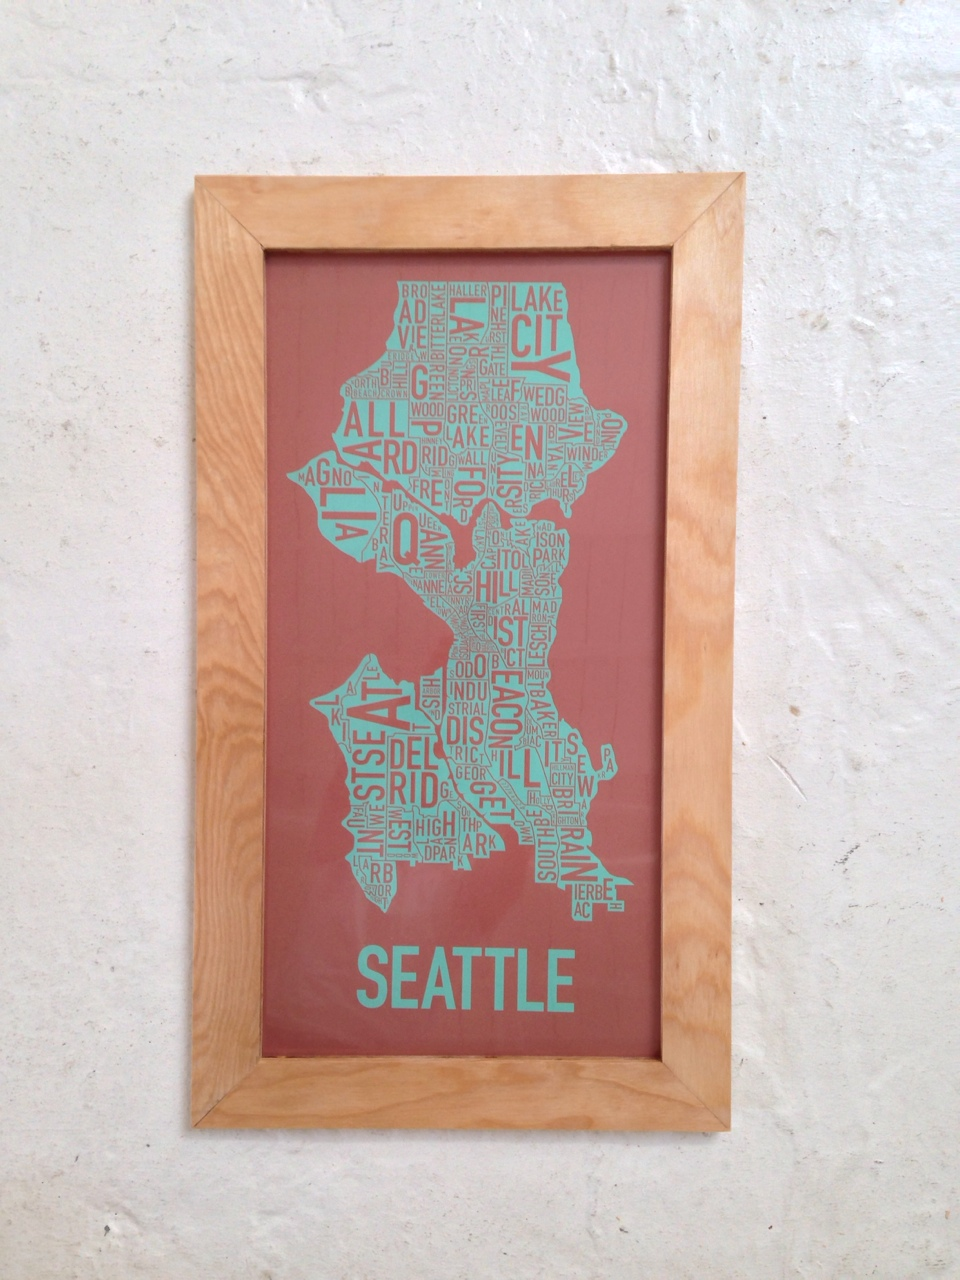 Made a custom frame for my Seattle screen-print out of scrap wood today